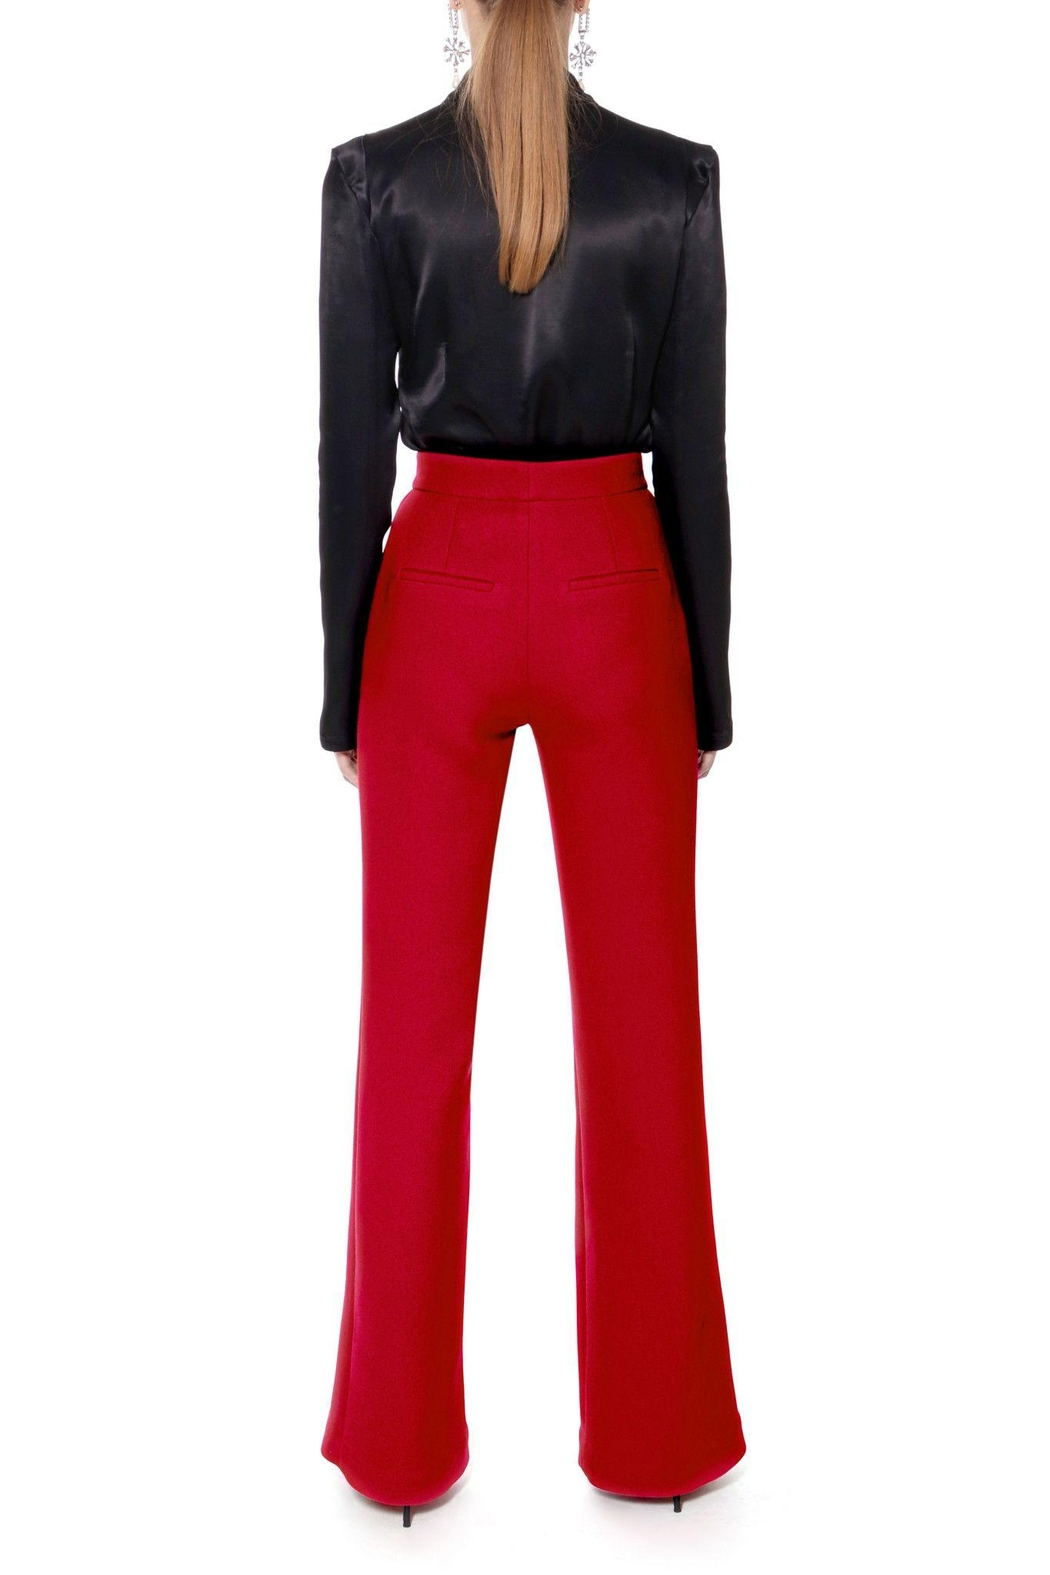 AGGI Pants Monica Lipstick Red - Height 165 - Side Cropped Image